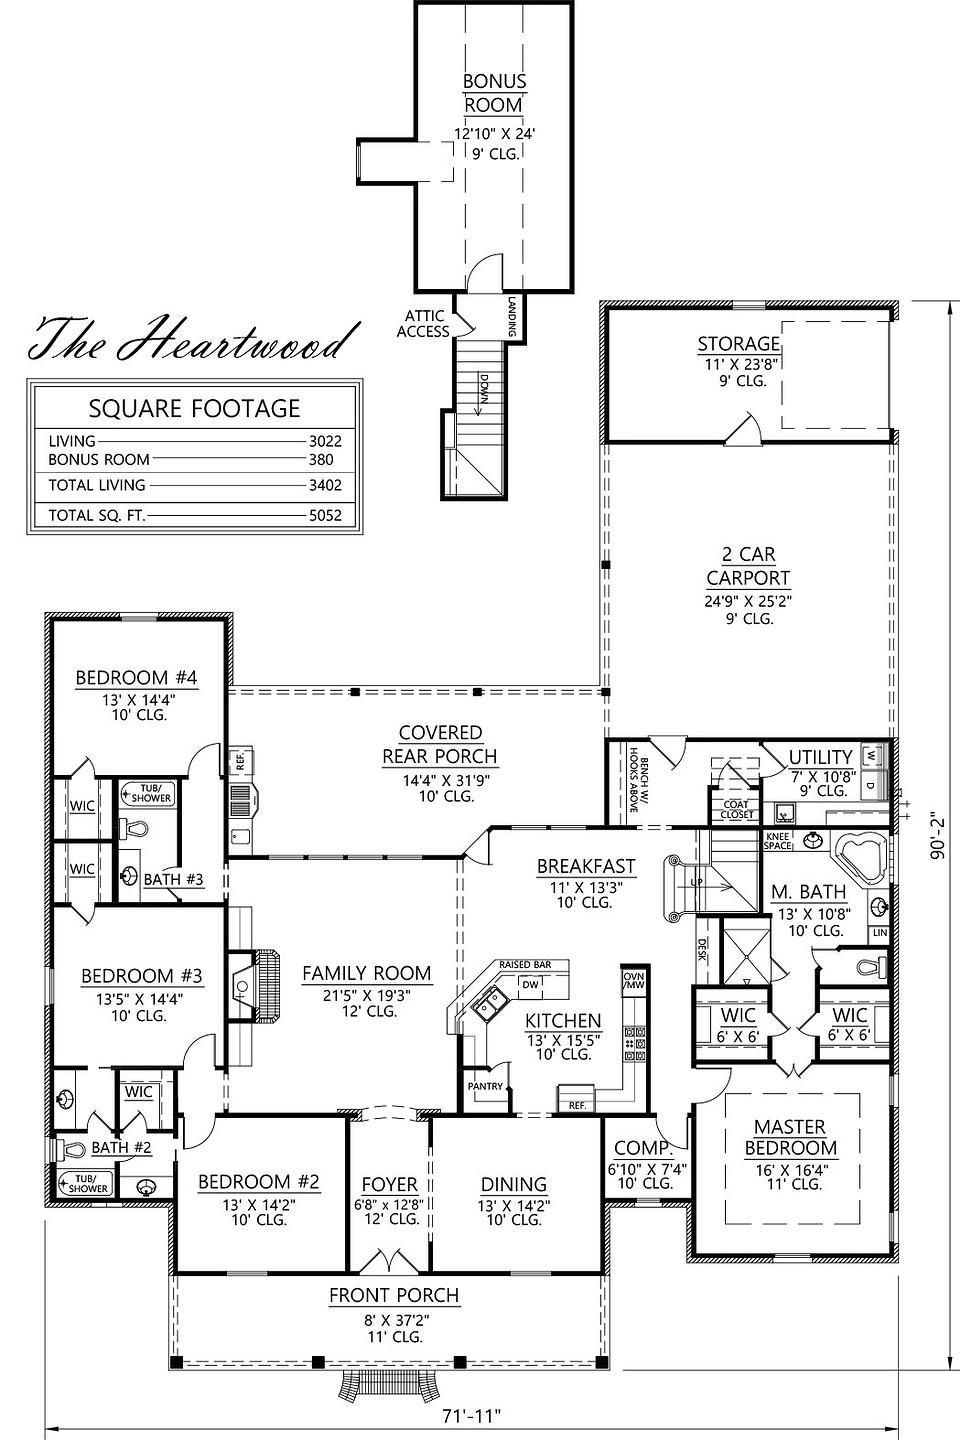 madden home design - the heartwood | floor plans | pinterest